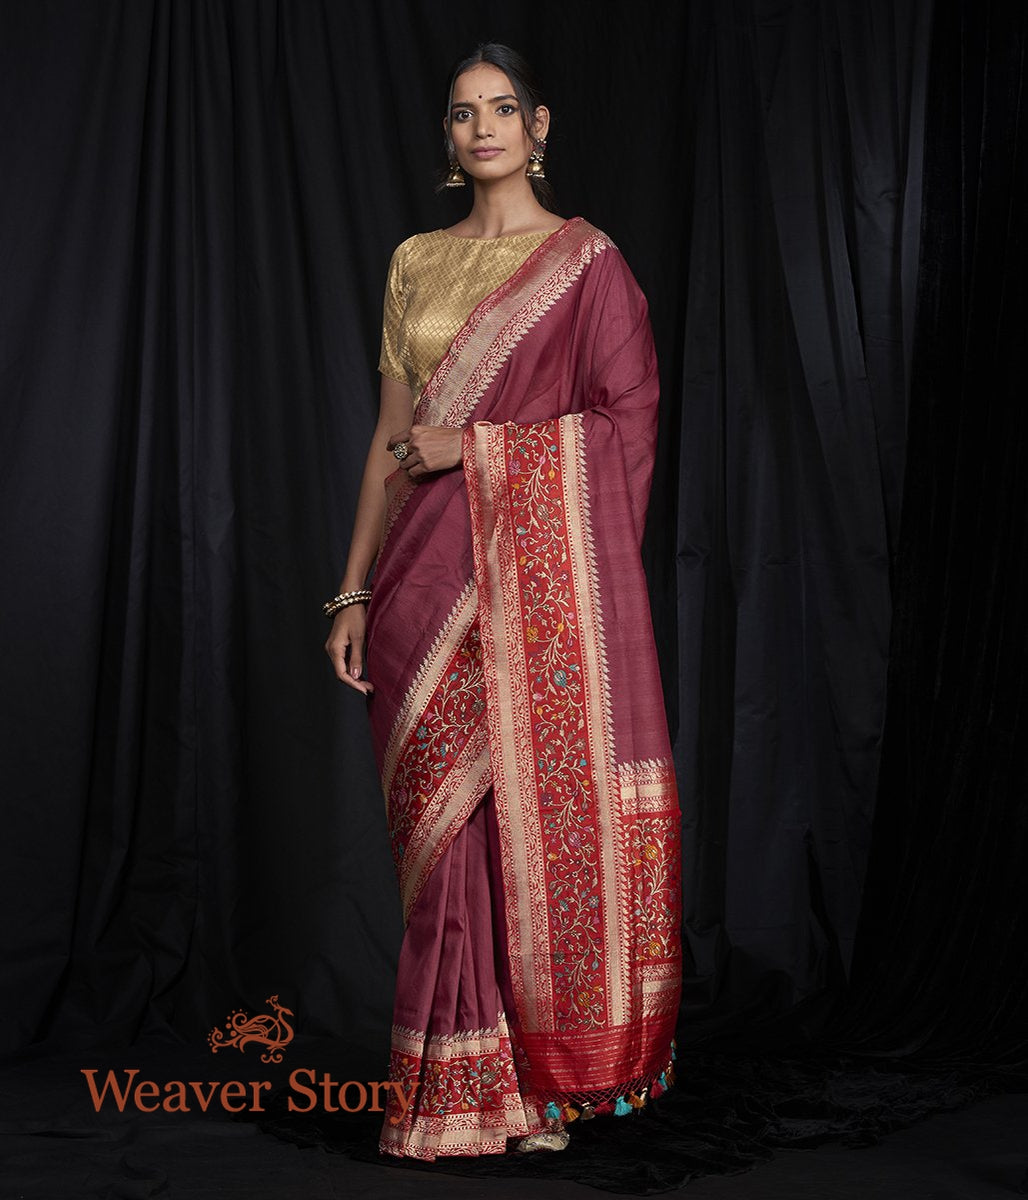 Handwoven Wine Tusser Banarasi Saree with Five Color Meenakari Border